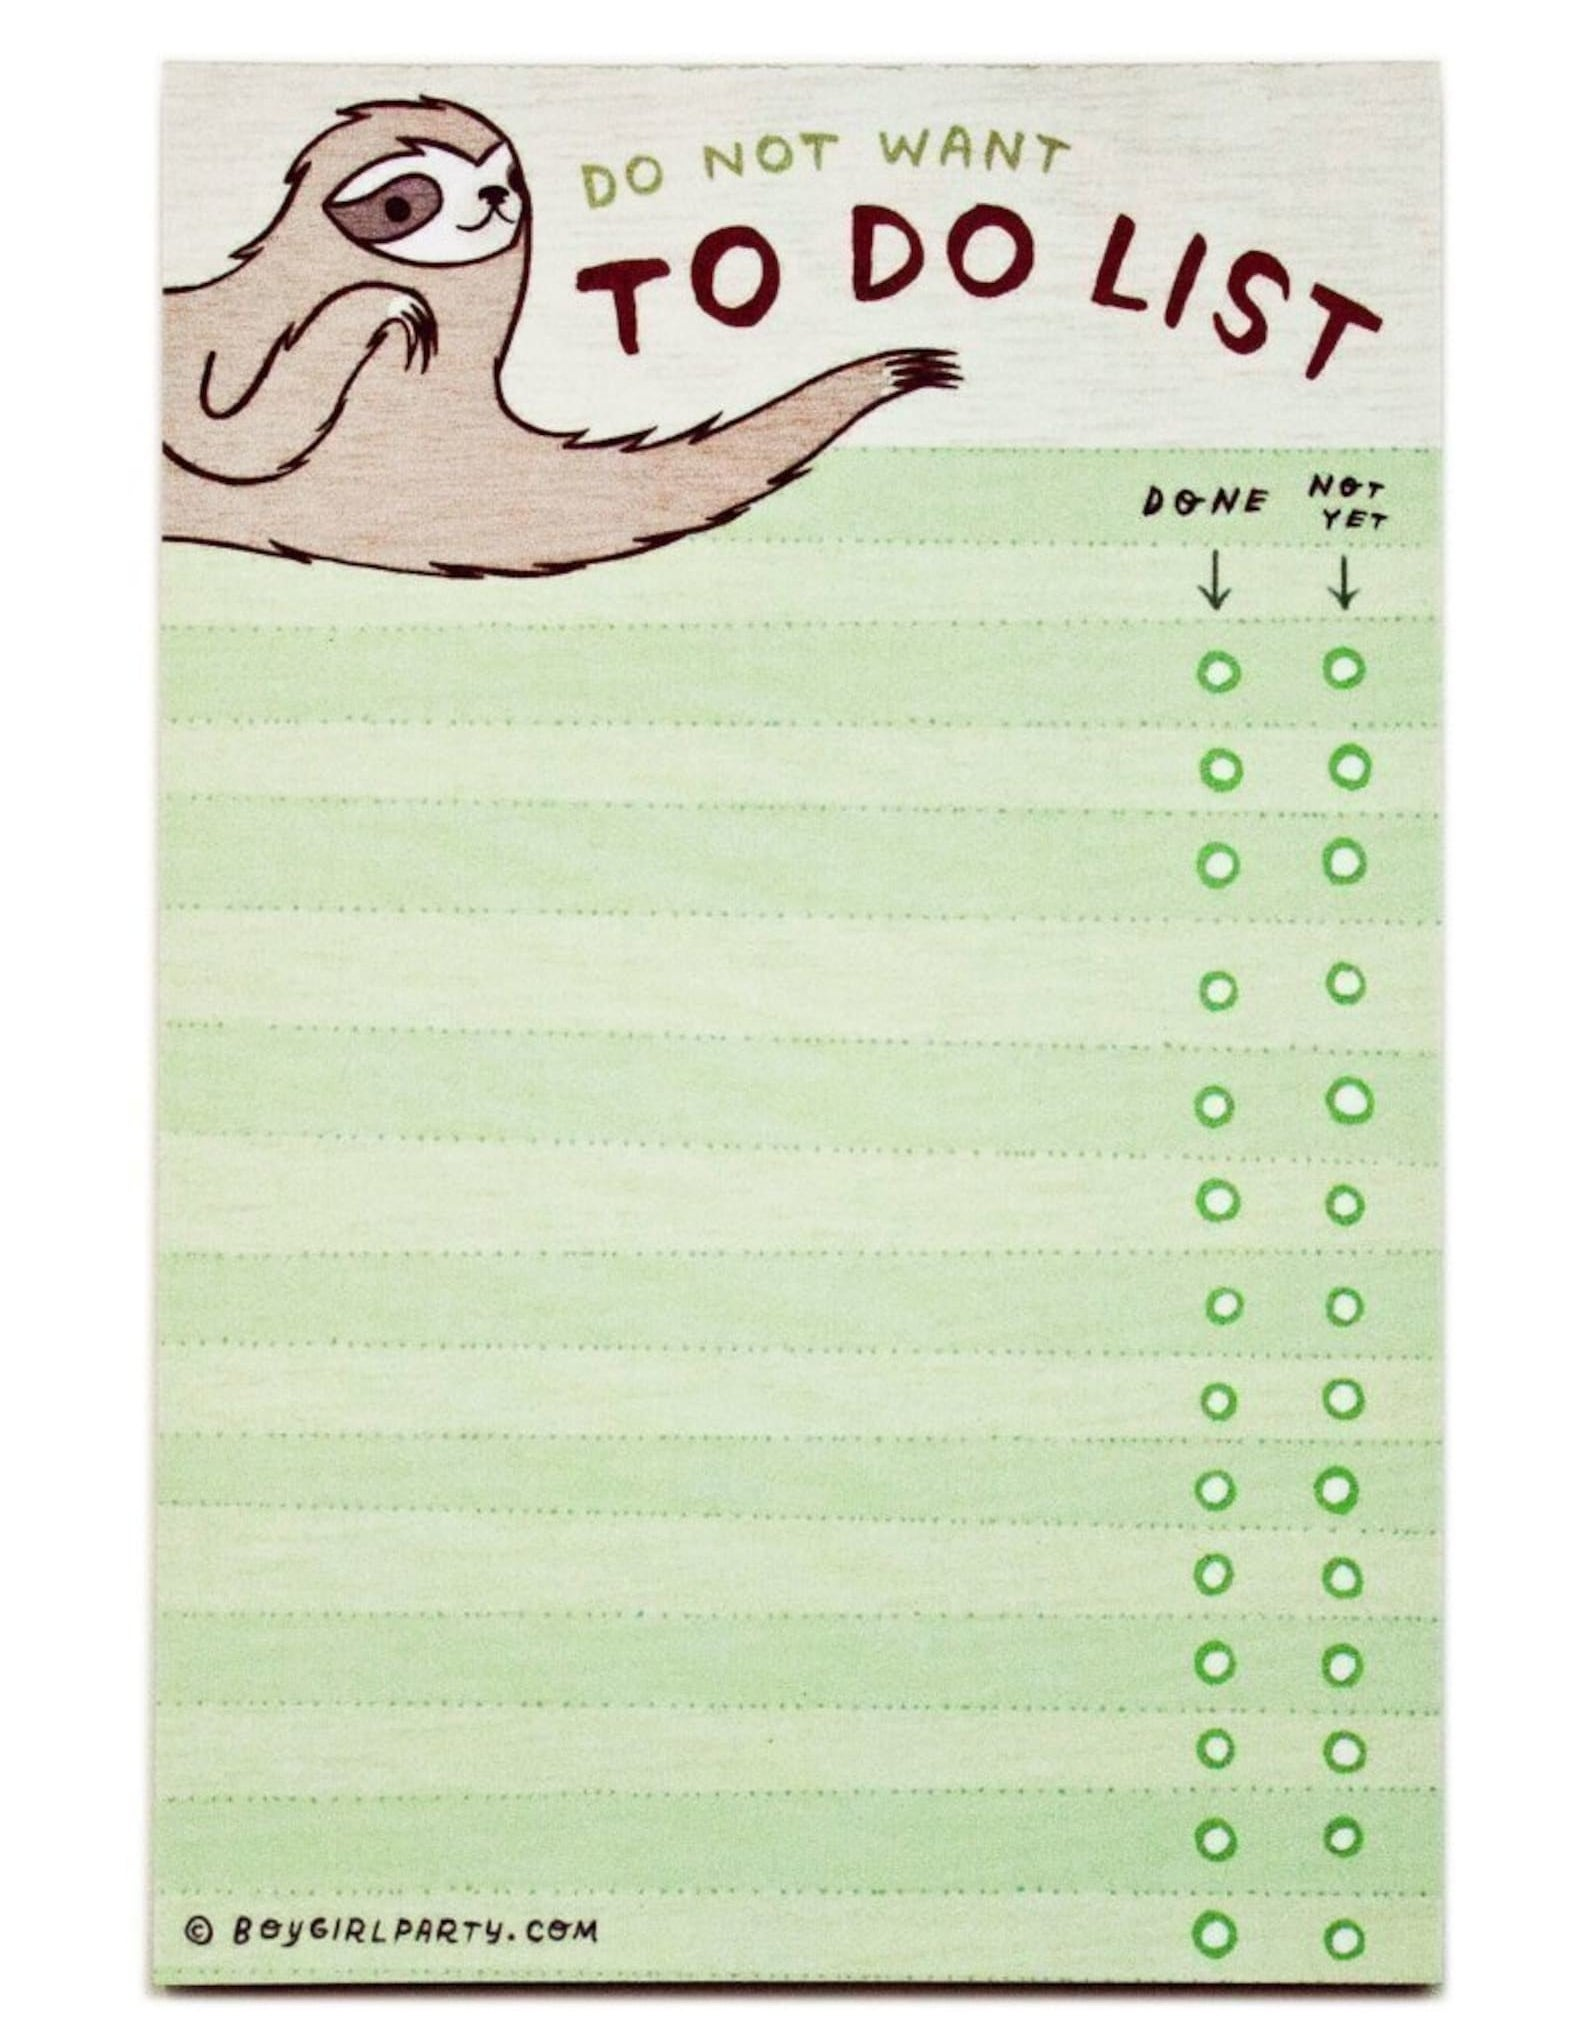 """the green notepad, which says """"do not want to do list"""" and has a sloth illustration in the top left corner"""